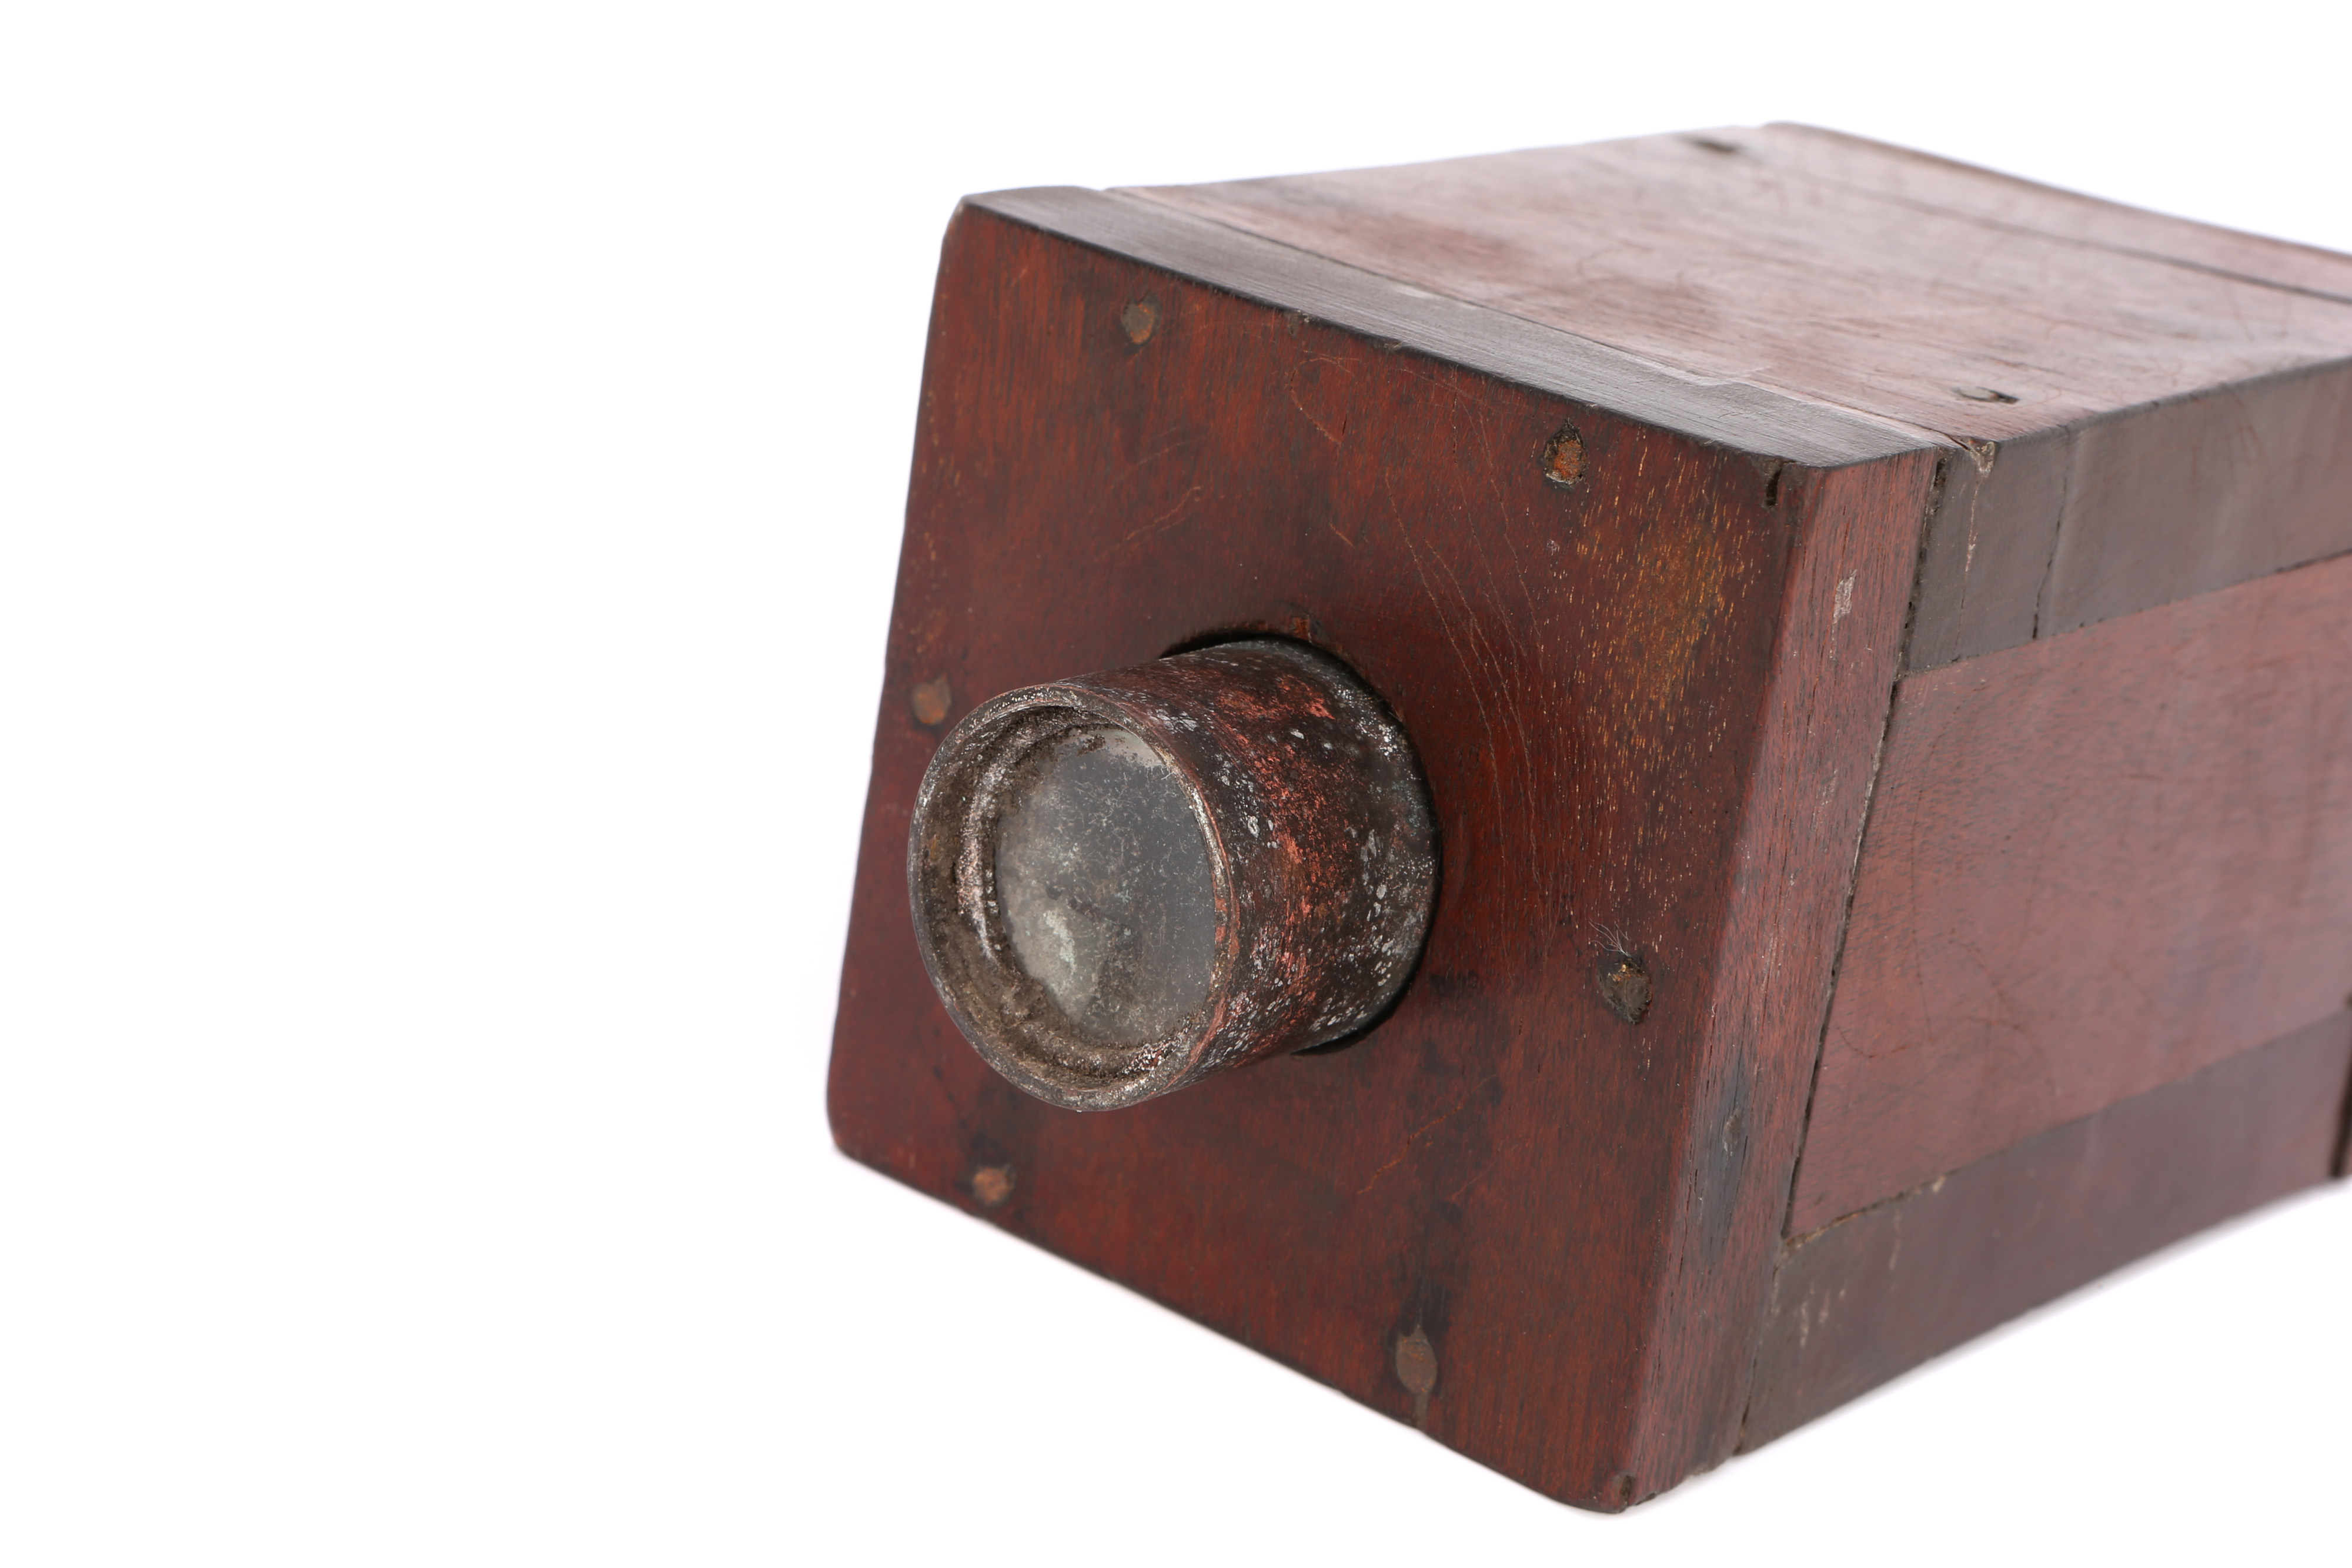 An Early Experimental 'Mousetrap' Camera, - Image 3 of 9